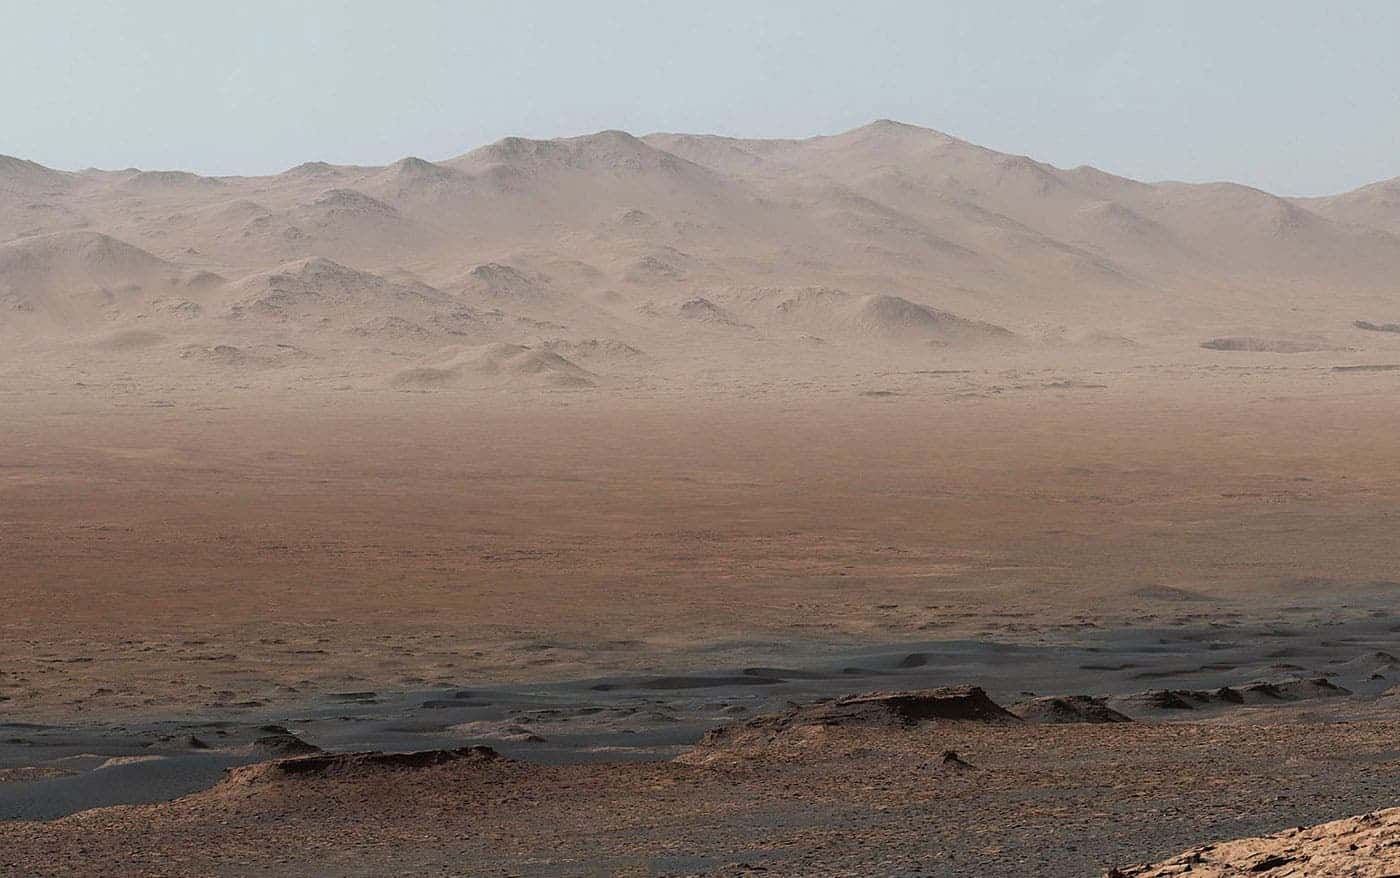 Behold this striking new panoramic view from NASA's Mars Curiosity Rover